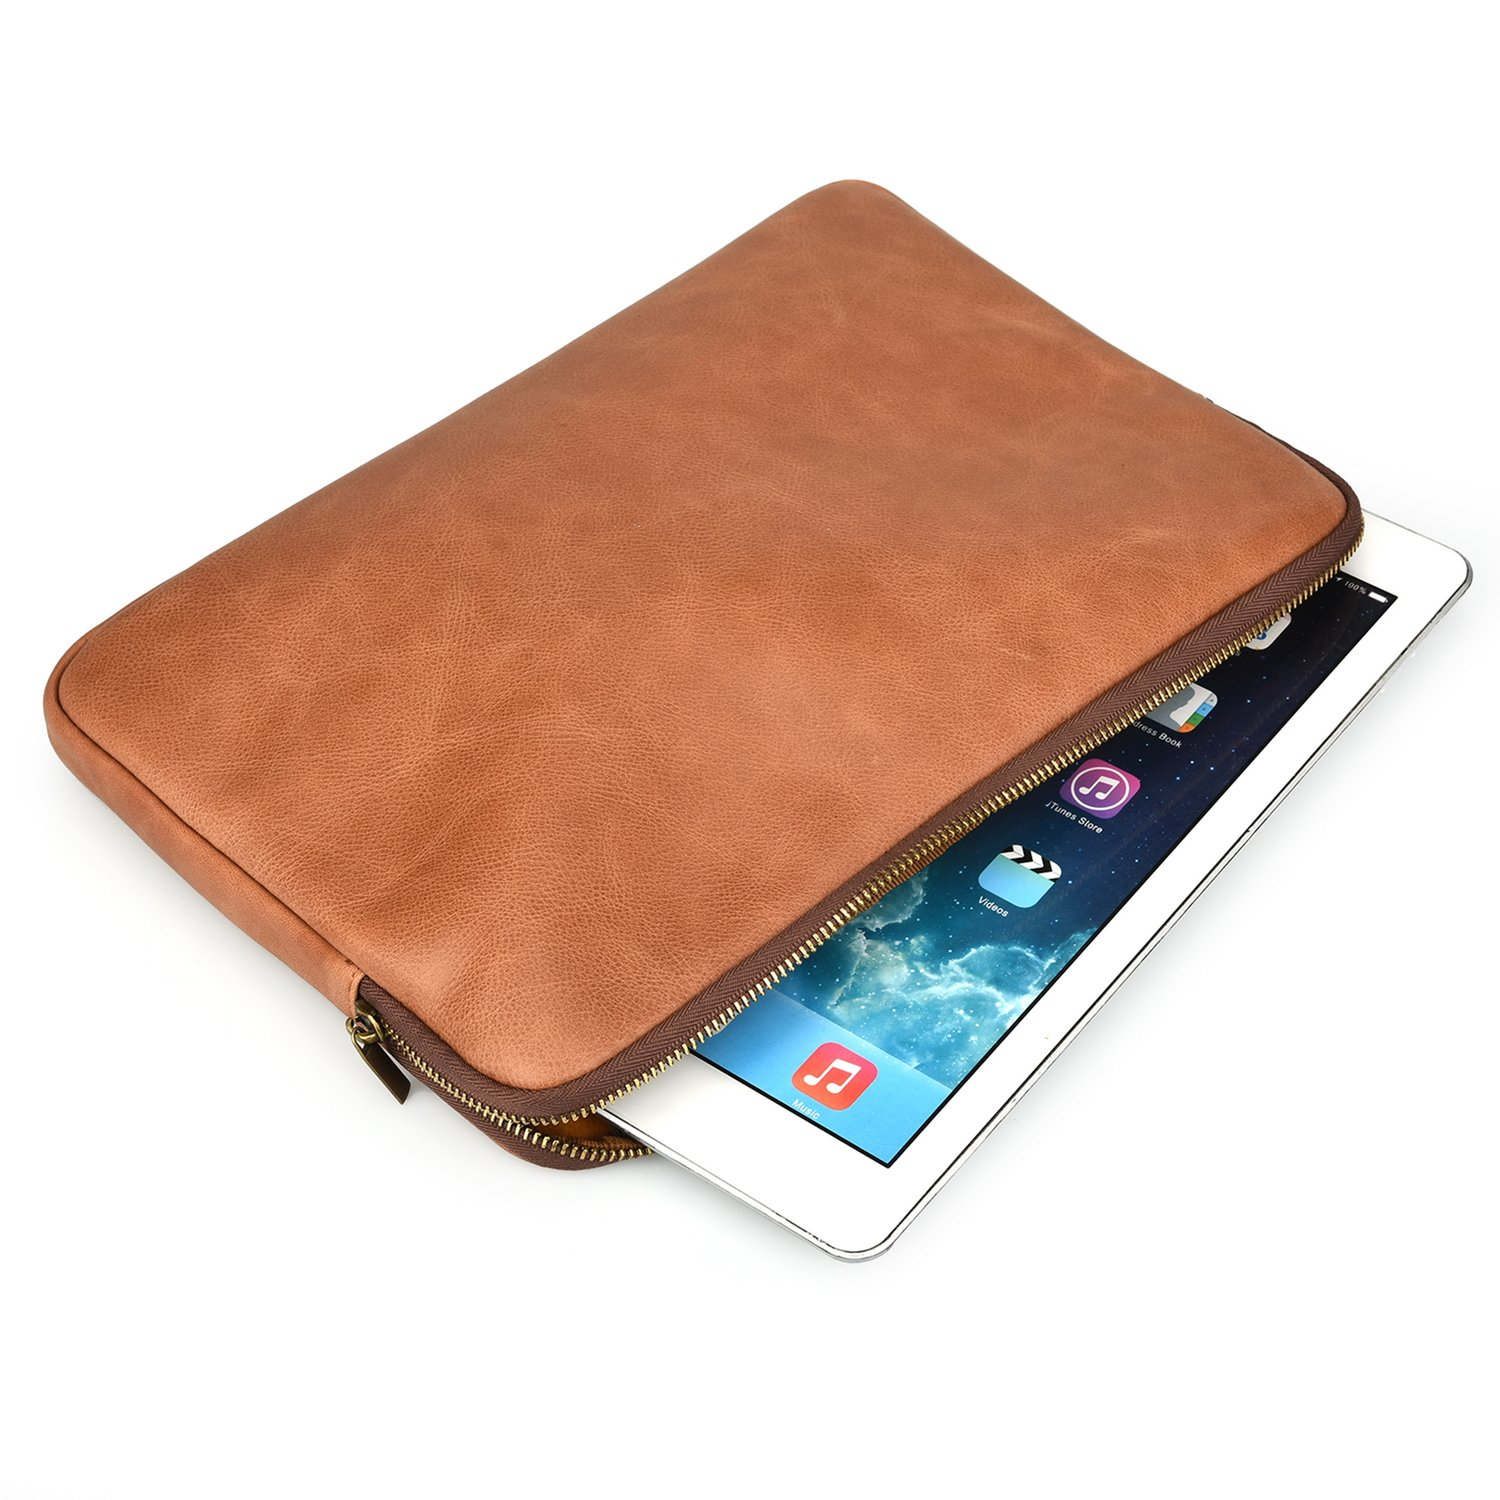 Genuine Leather Sleeve Bag Case Protective Cover for iPad Air, Air 2 or Pro 9.7 inch (Brown)